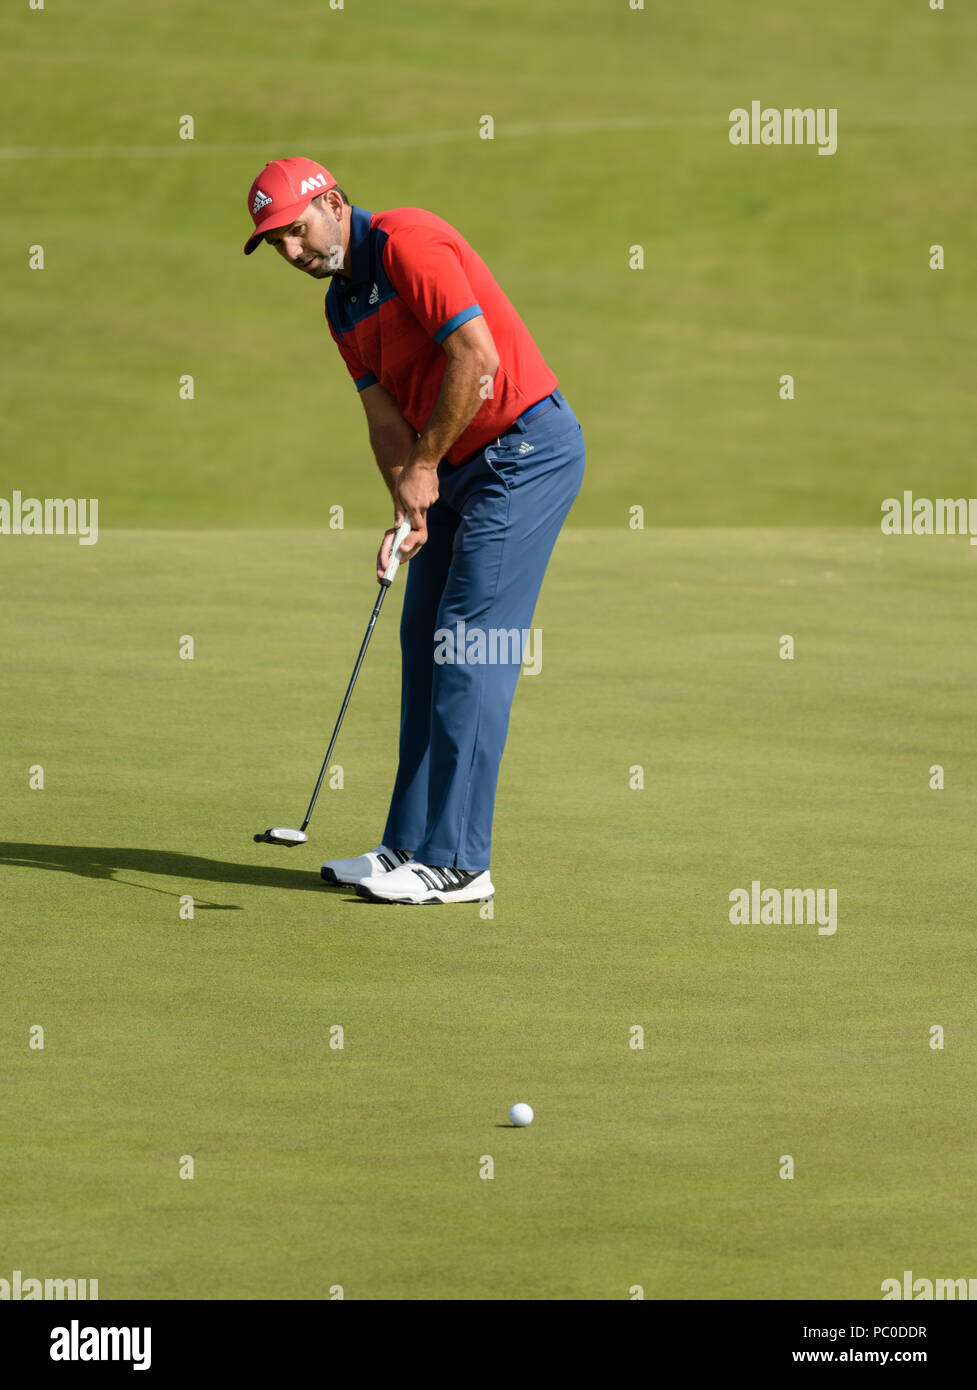 Golfer Sergio Garcia showing focus and determination when putting on a green at Royal Birkdale, Southport, during a practice day at The Open in 2017 - Stock Image